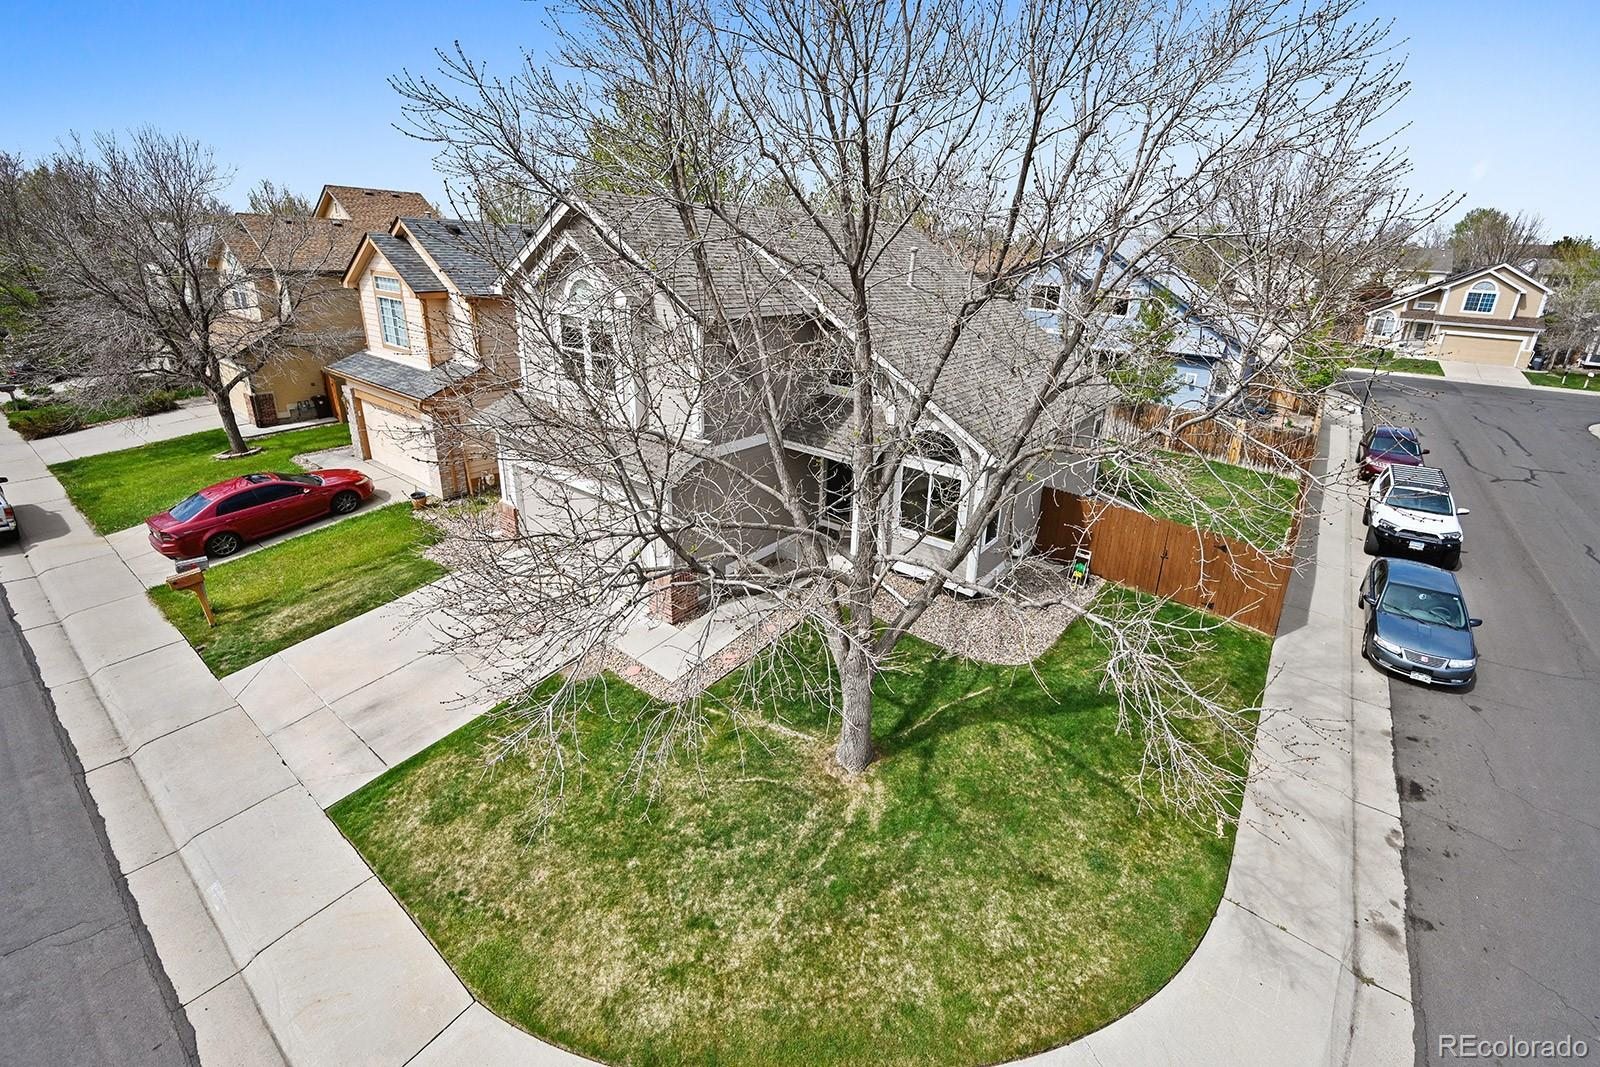 12567 Forest View Street, Broomfield, CO  80020 - Featured Property